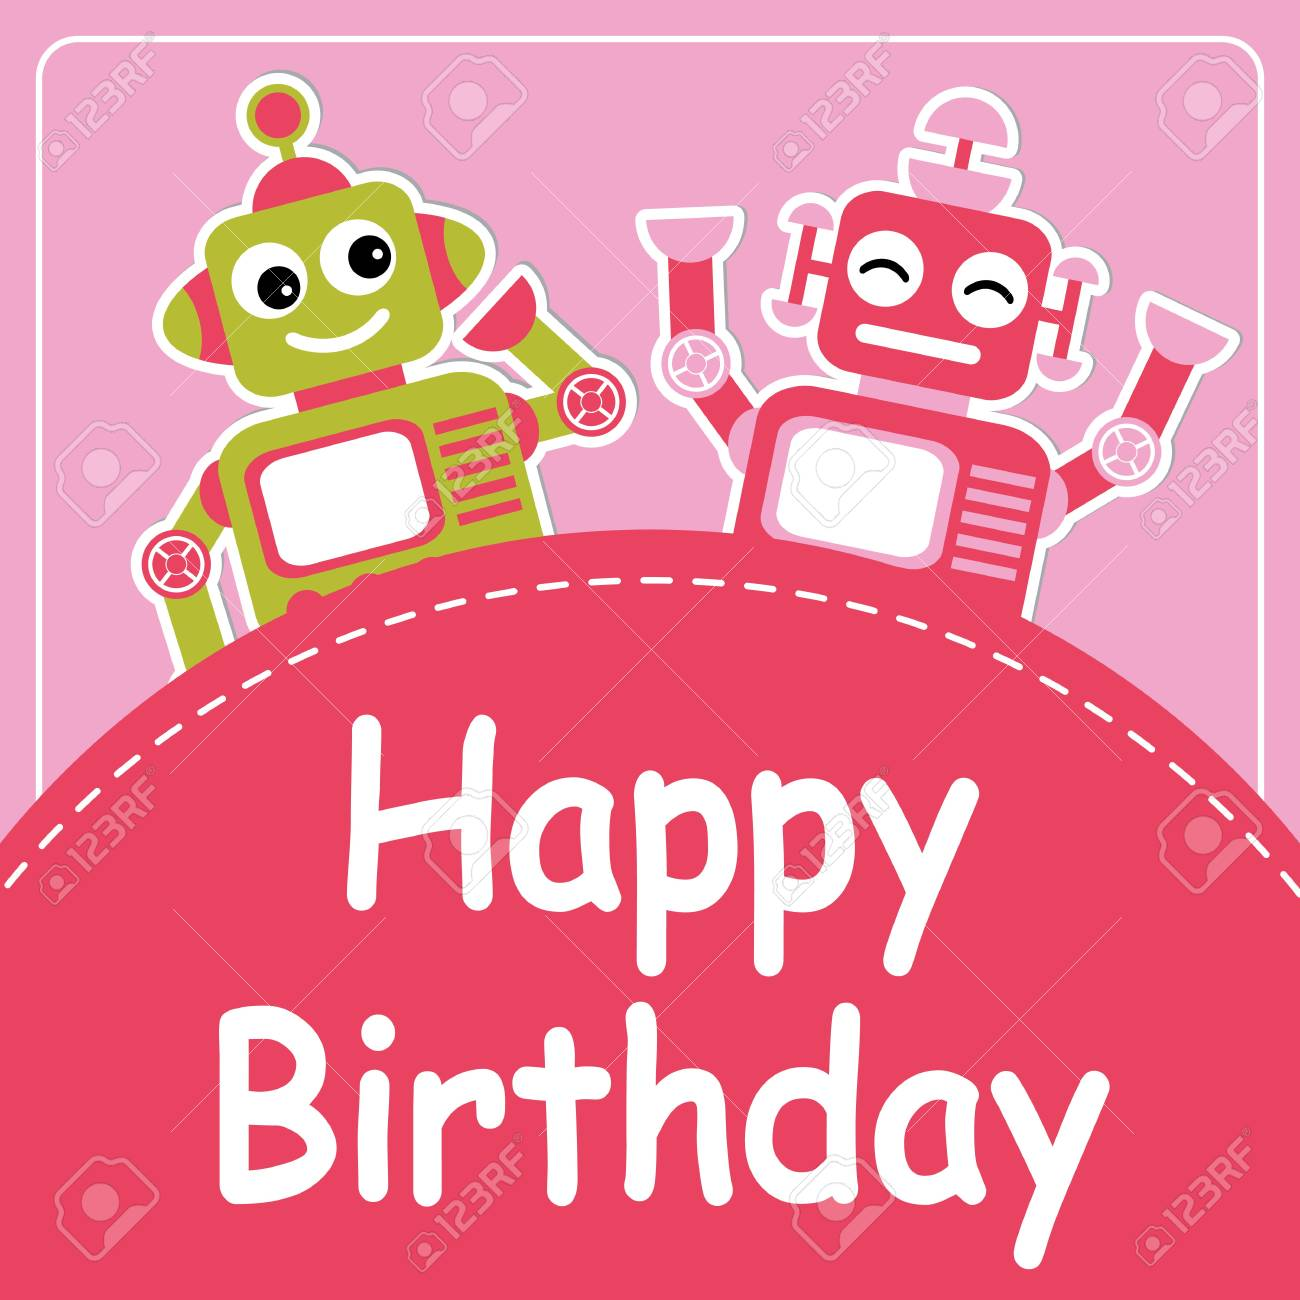 Vector Cartoon Illustration With Cute Two Robots On Pink Background